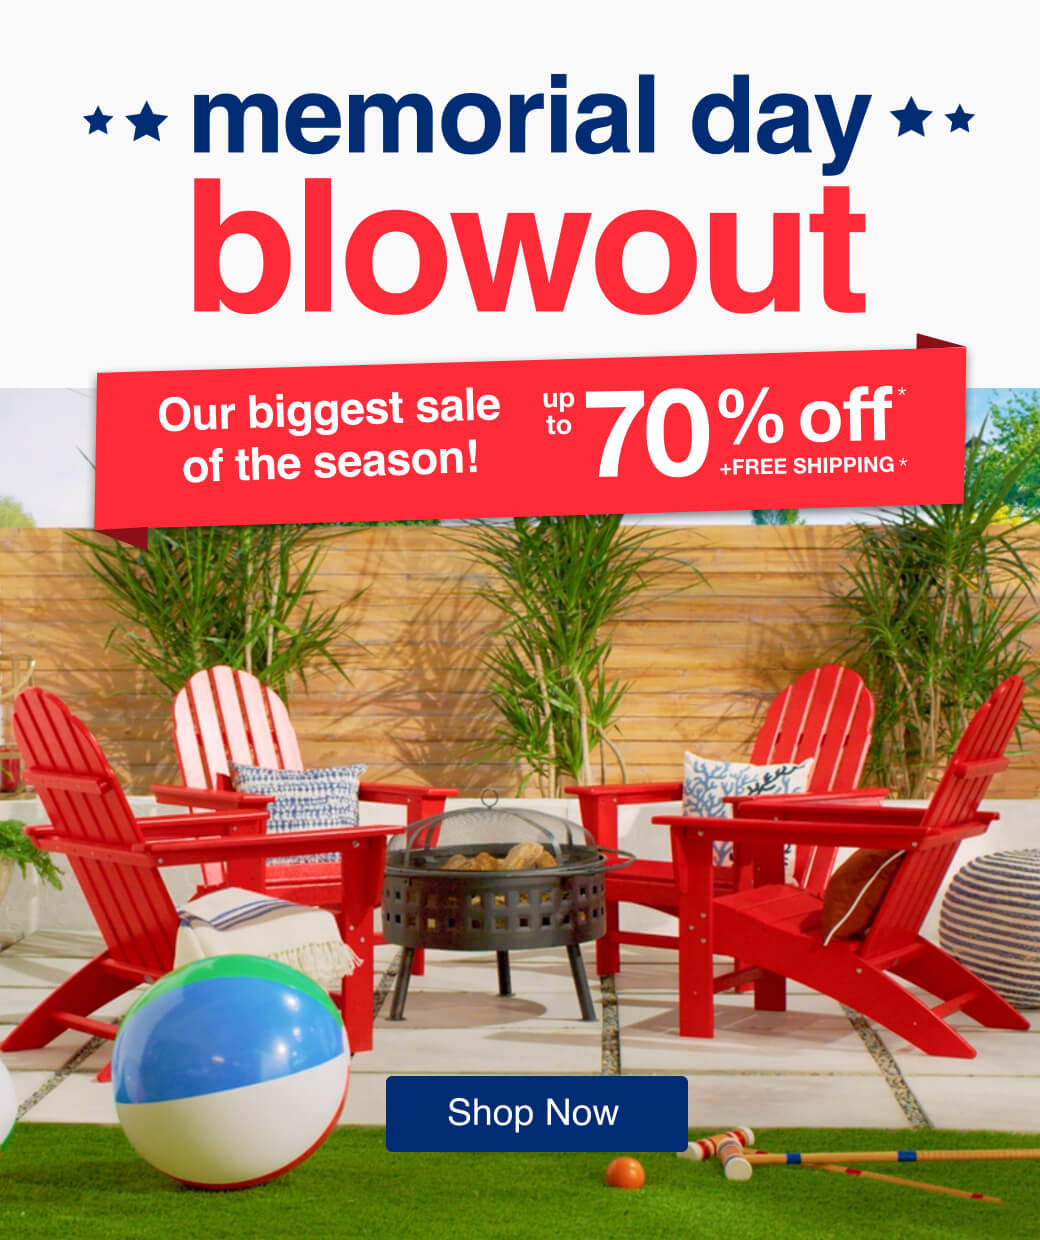 Memorial Day Blowout mobile